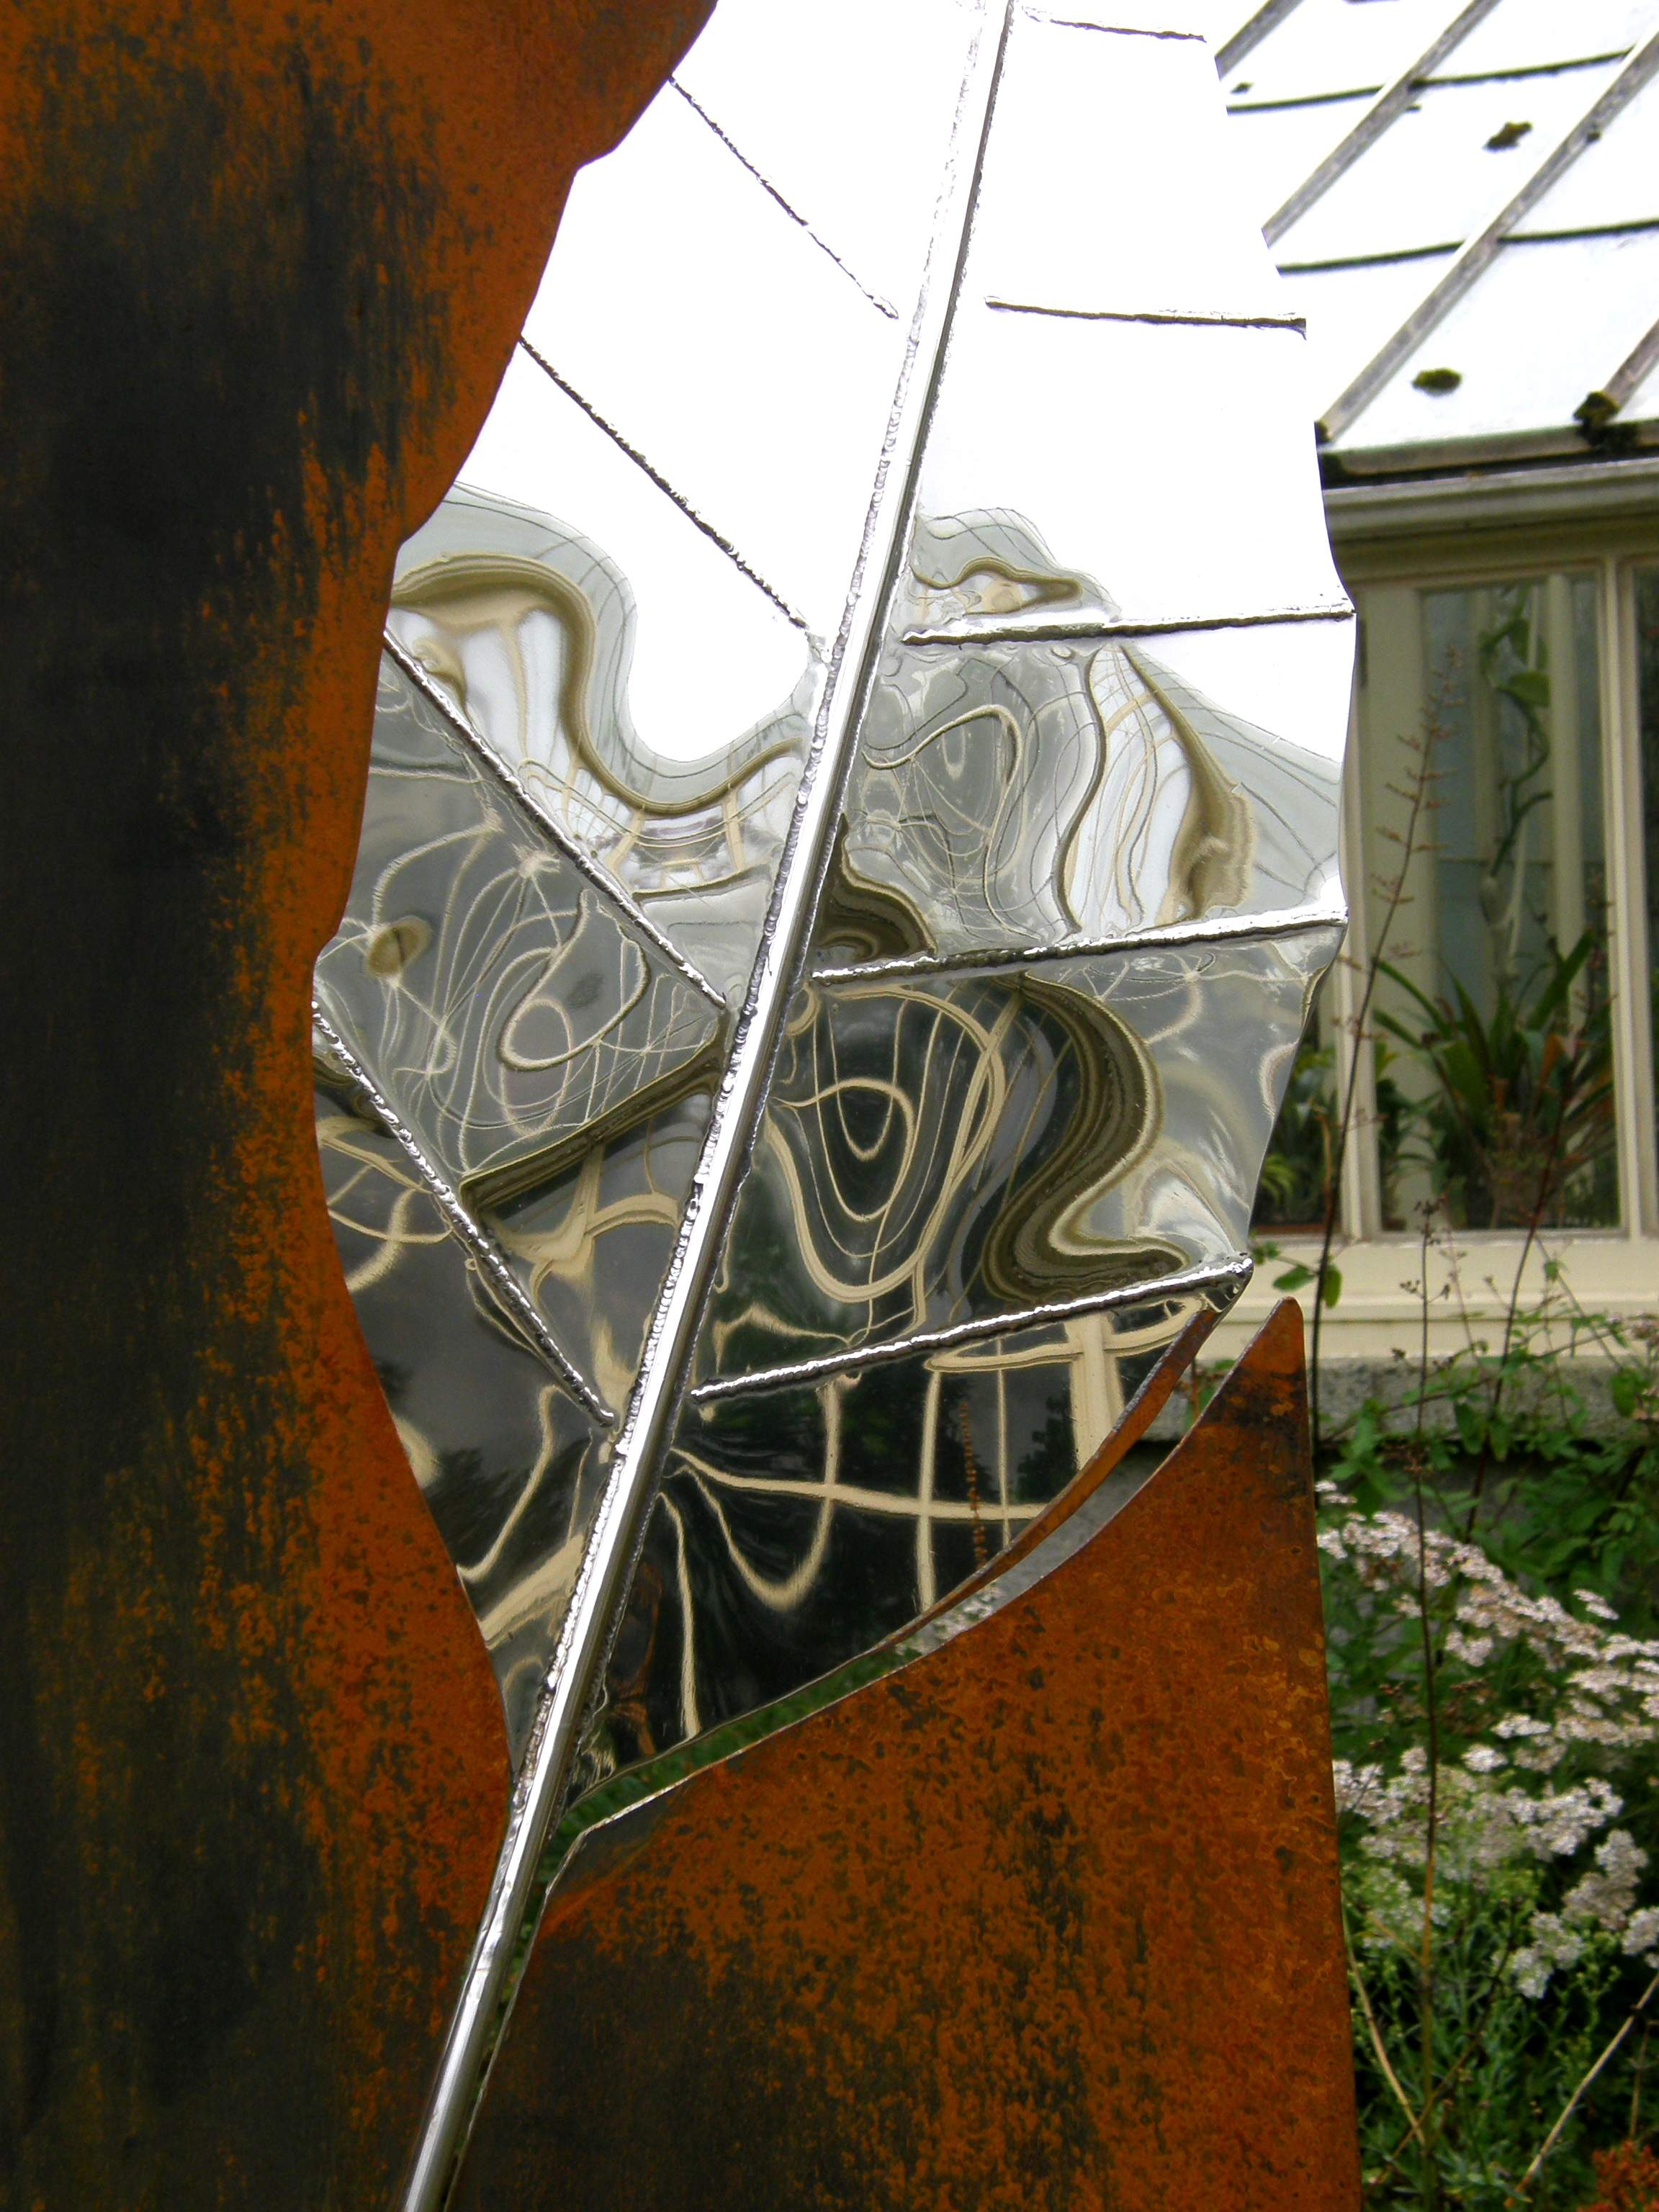 Fern House Reflections in Stainless Steel Leaf - Sculpture in Context 2019